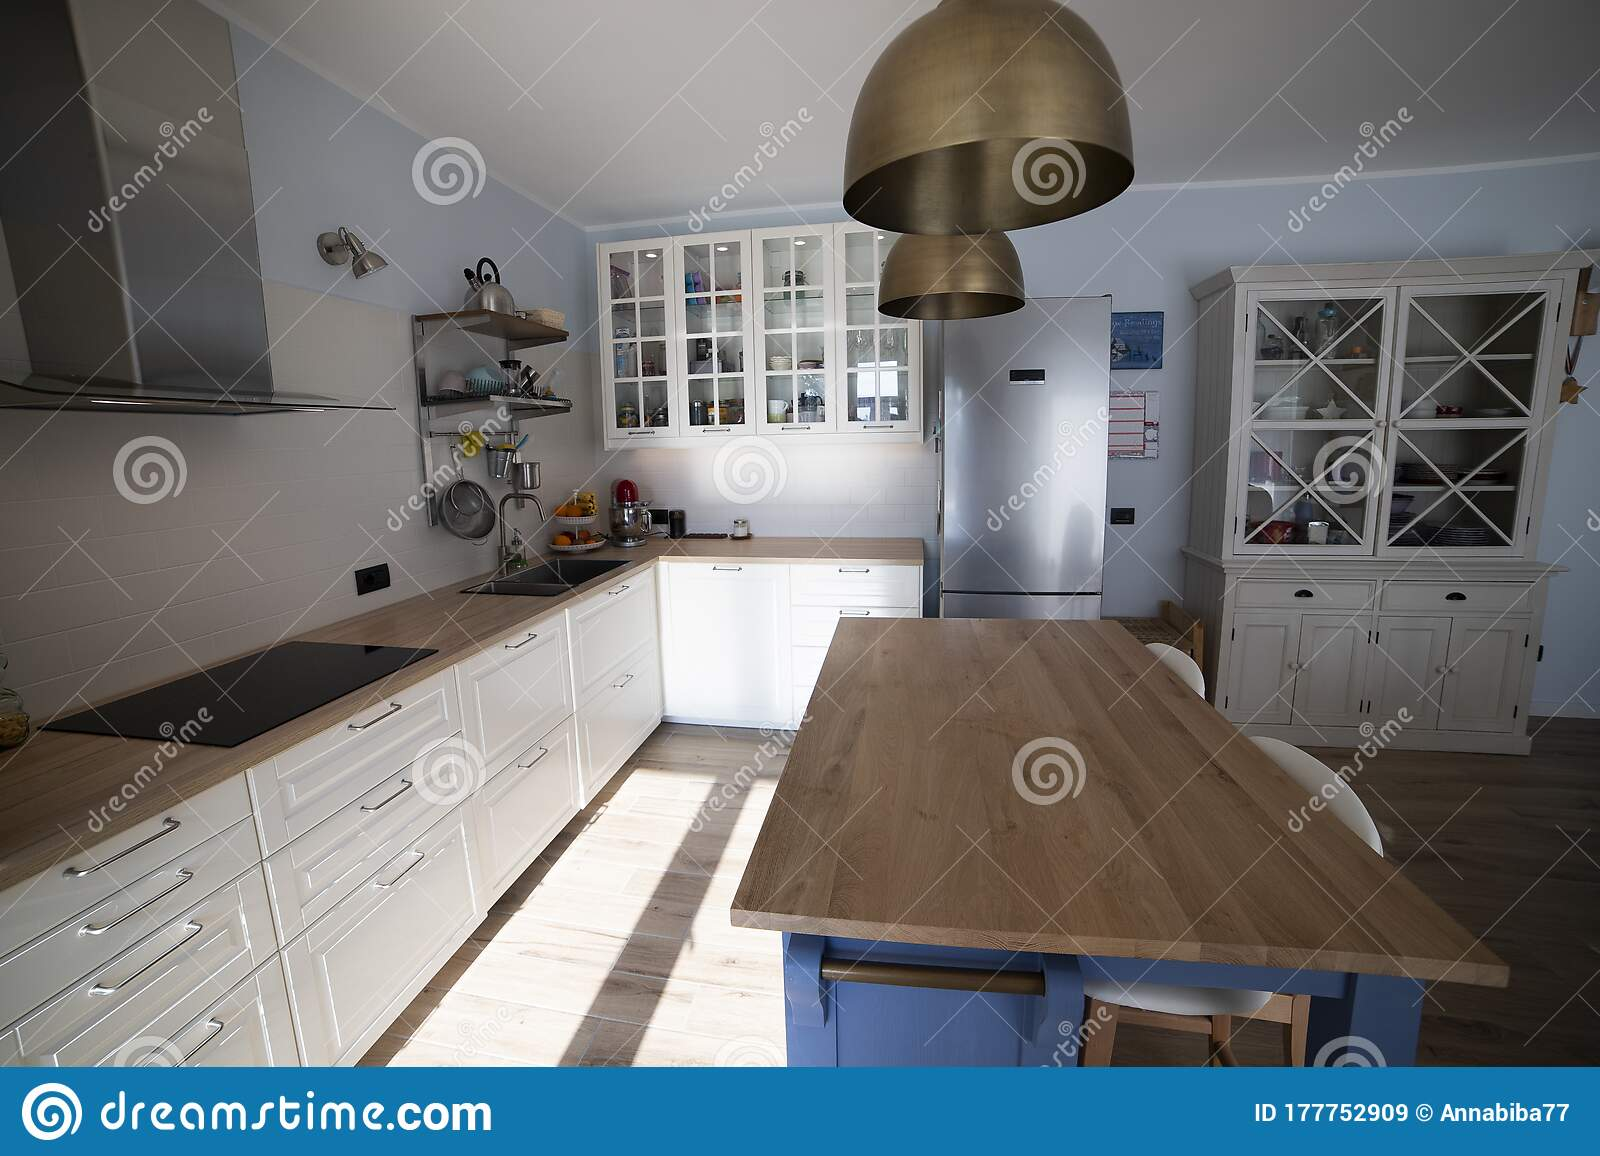 White Kitchen With Blue Island And White Cupboard Side View Stock Image Image Of Easygoing Beautiful 177752909